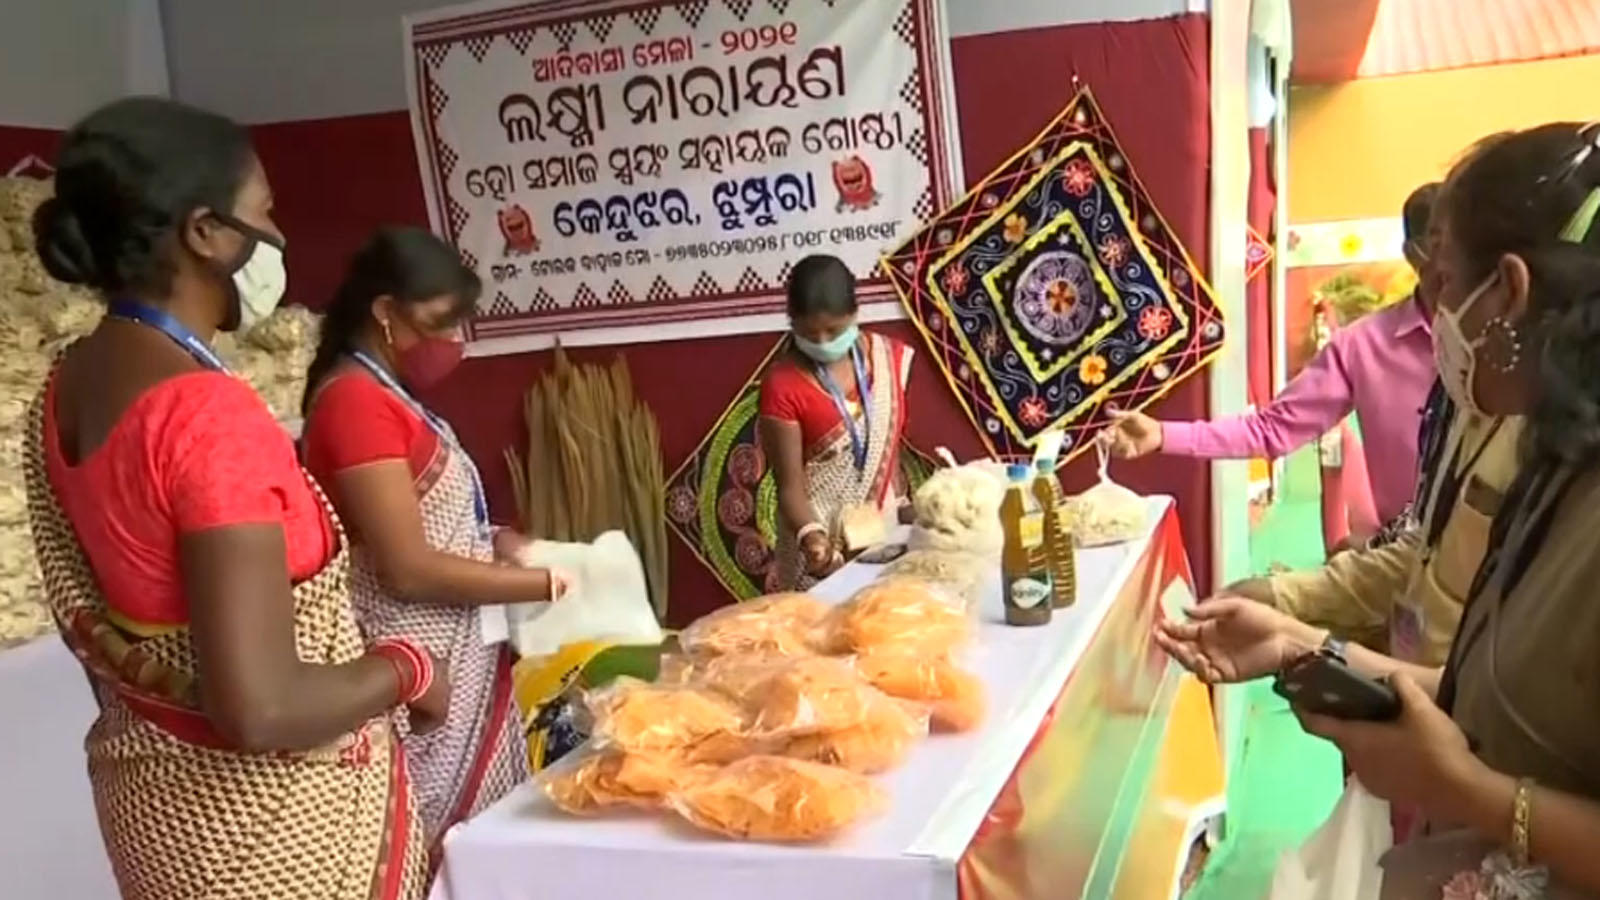 odishas-oldest-adivasi-mela-2021-begins